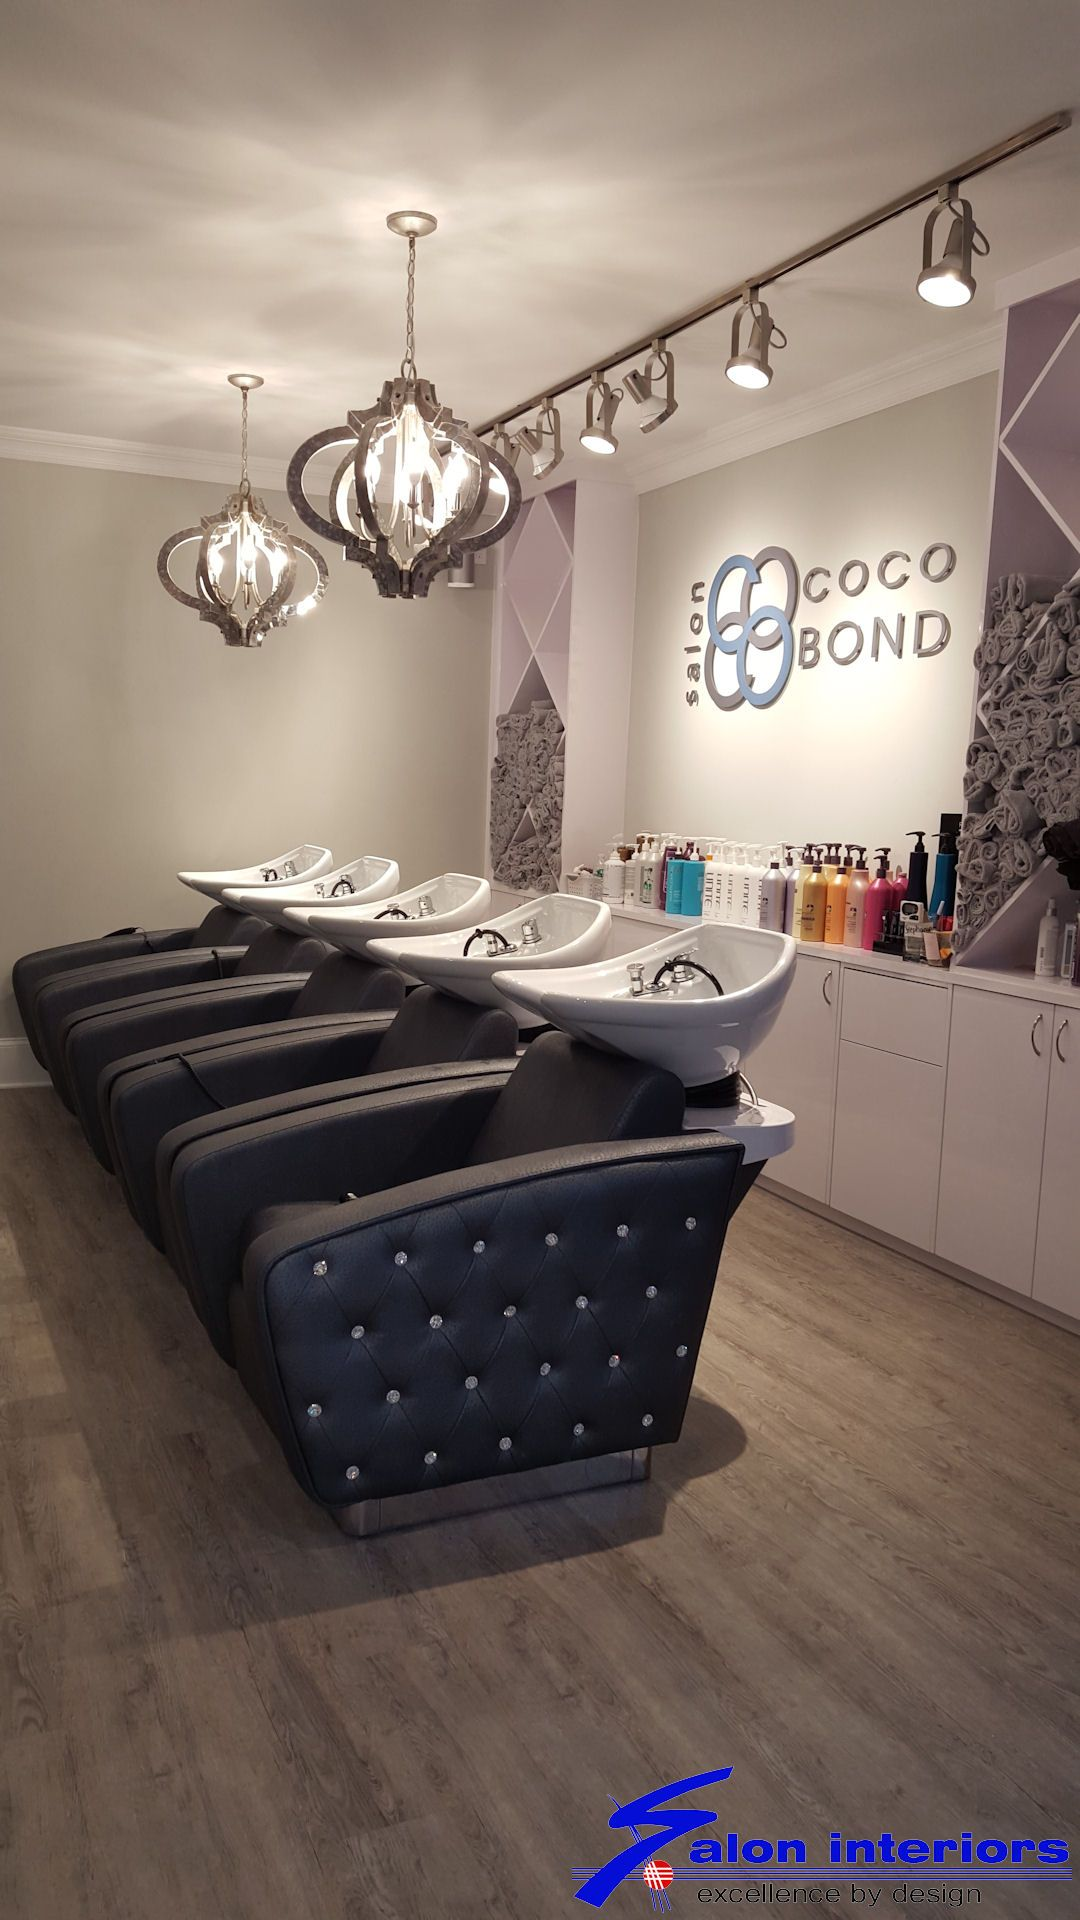 Salon Interiors Inc In South Hackensack Nj Designs Maximize Space For Both Client And Staff To Flow Together Salon Interior Design Salon Interior Salon Decor